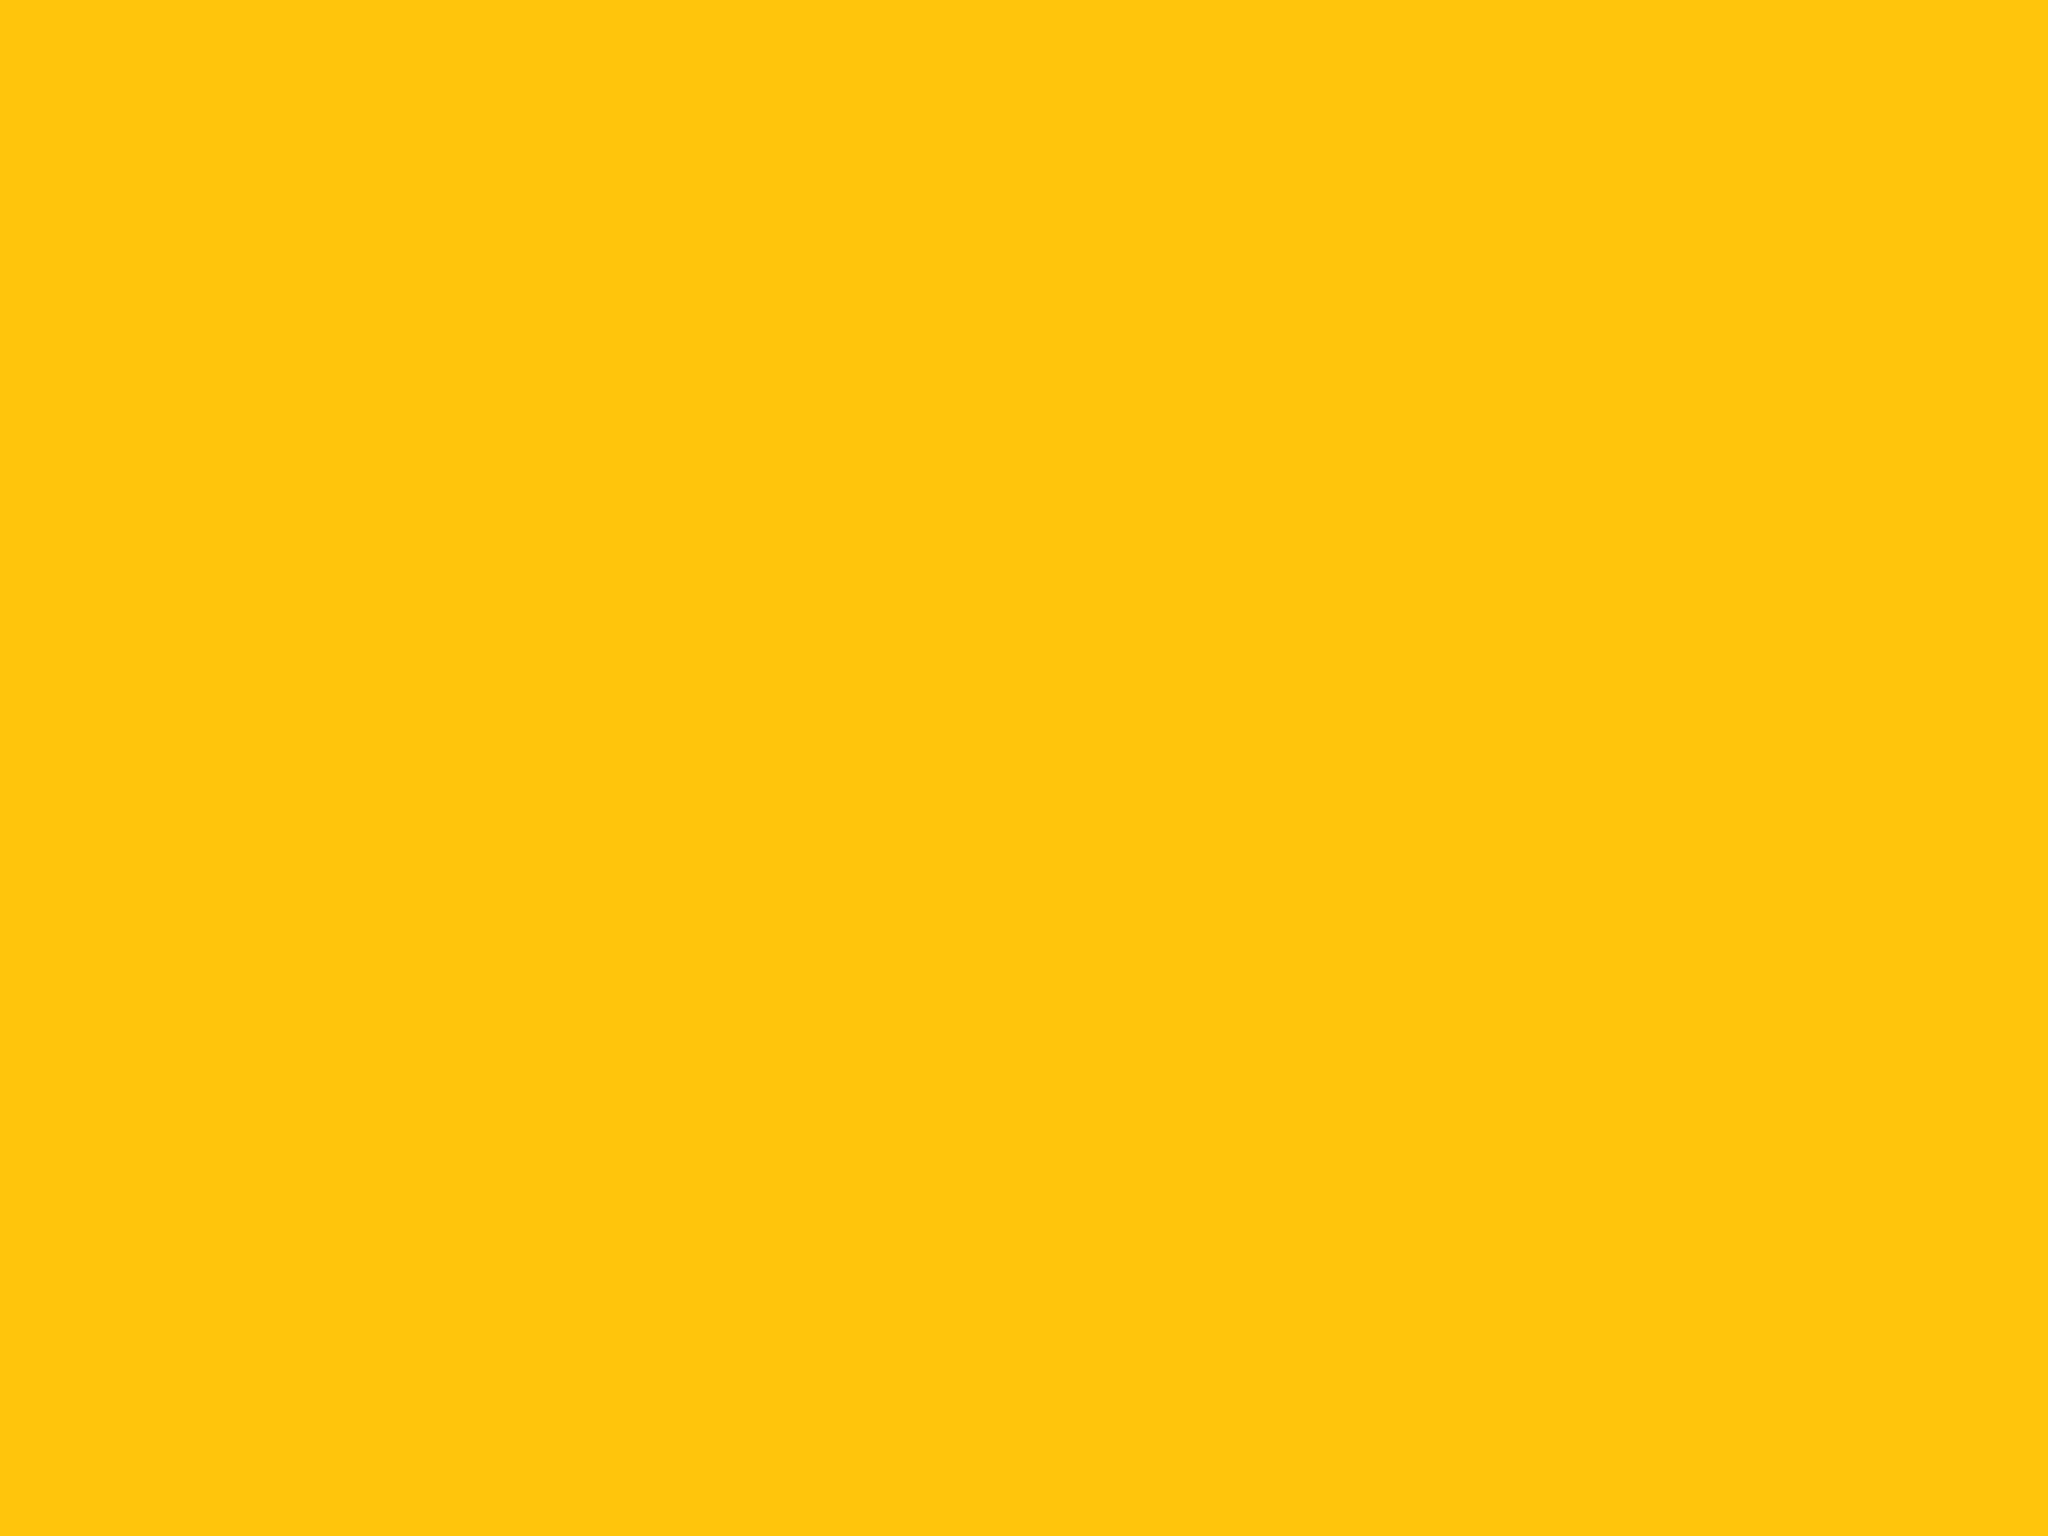 2048x1536 Mikado Yellow Solid Color Background